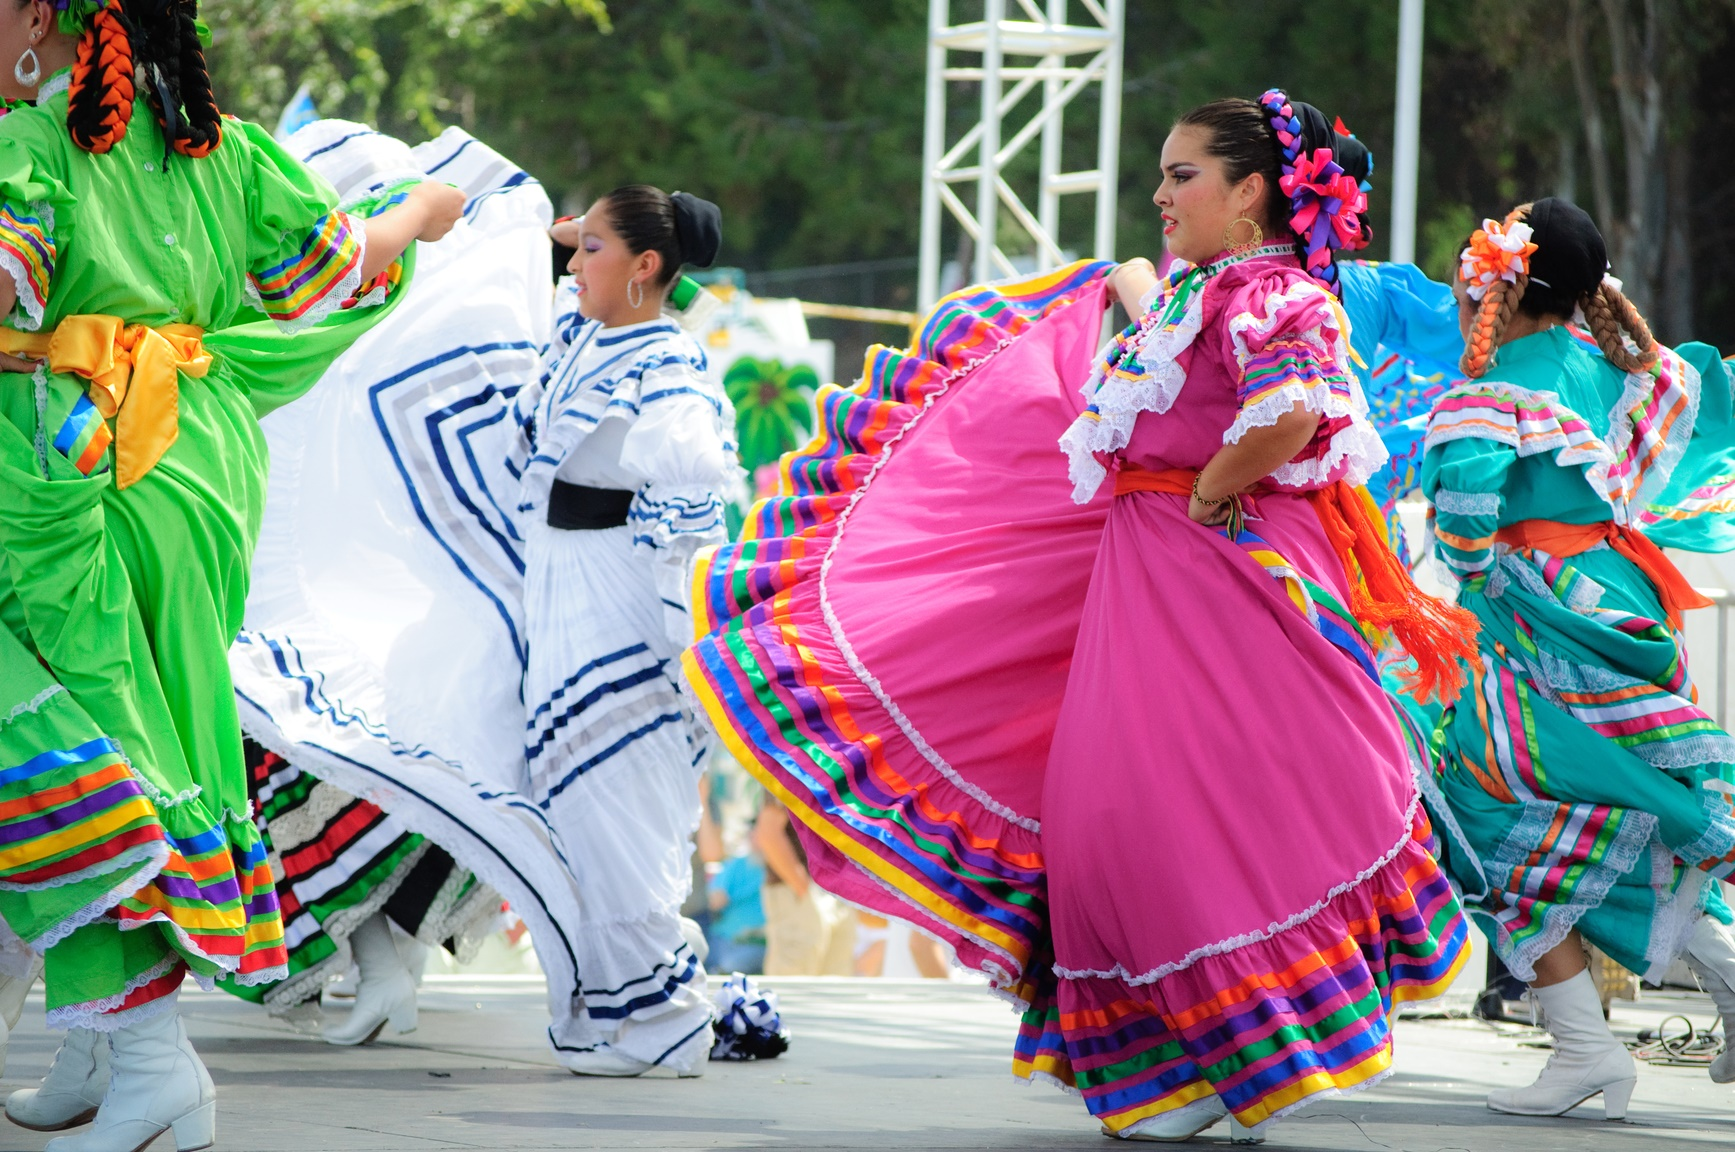 Performing Arts - Mexican Folklore